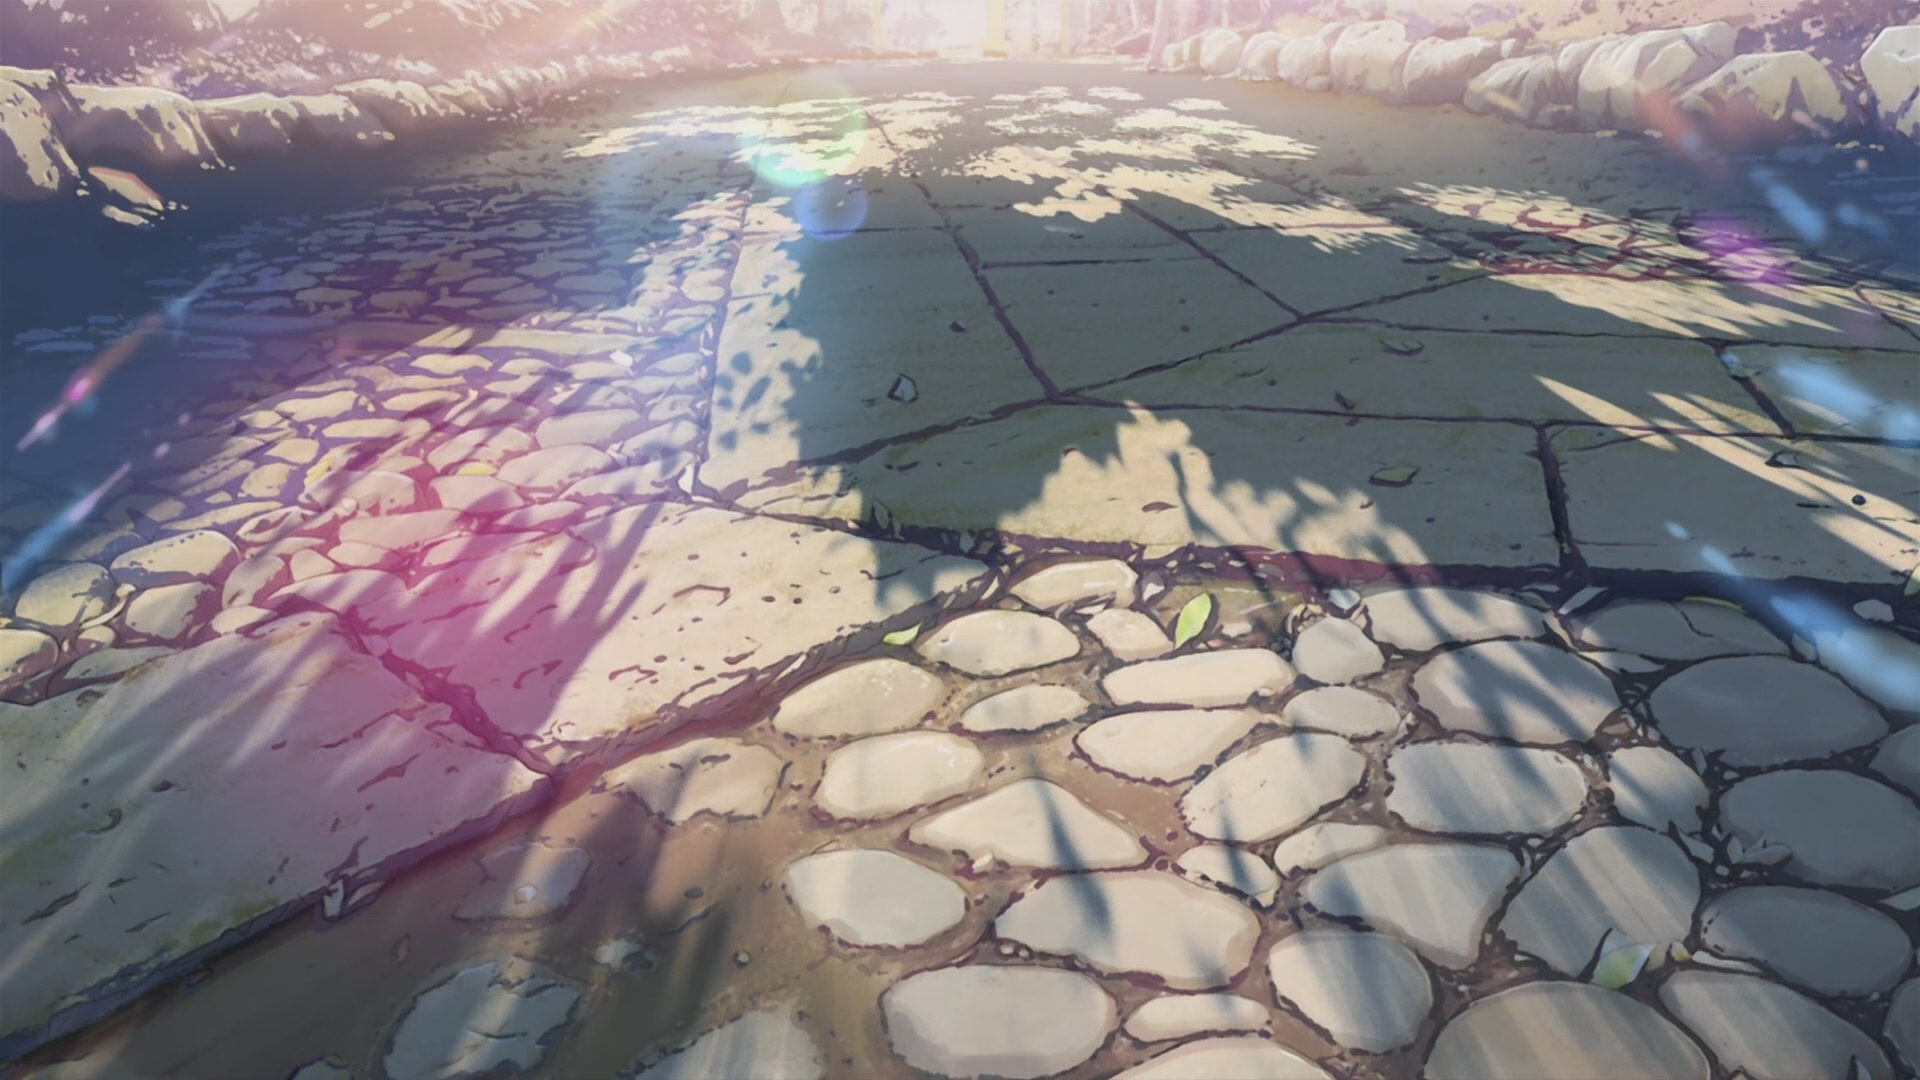 5 Centimeters Per Second Makoto Shinkai Hd Wallpaper 121623